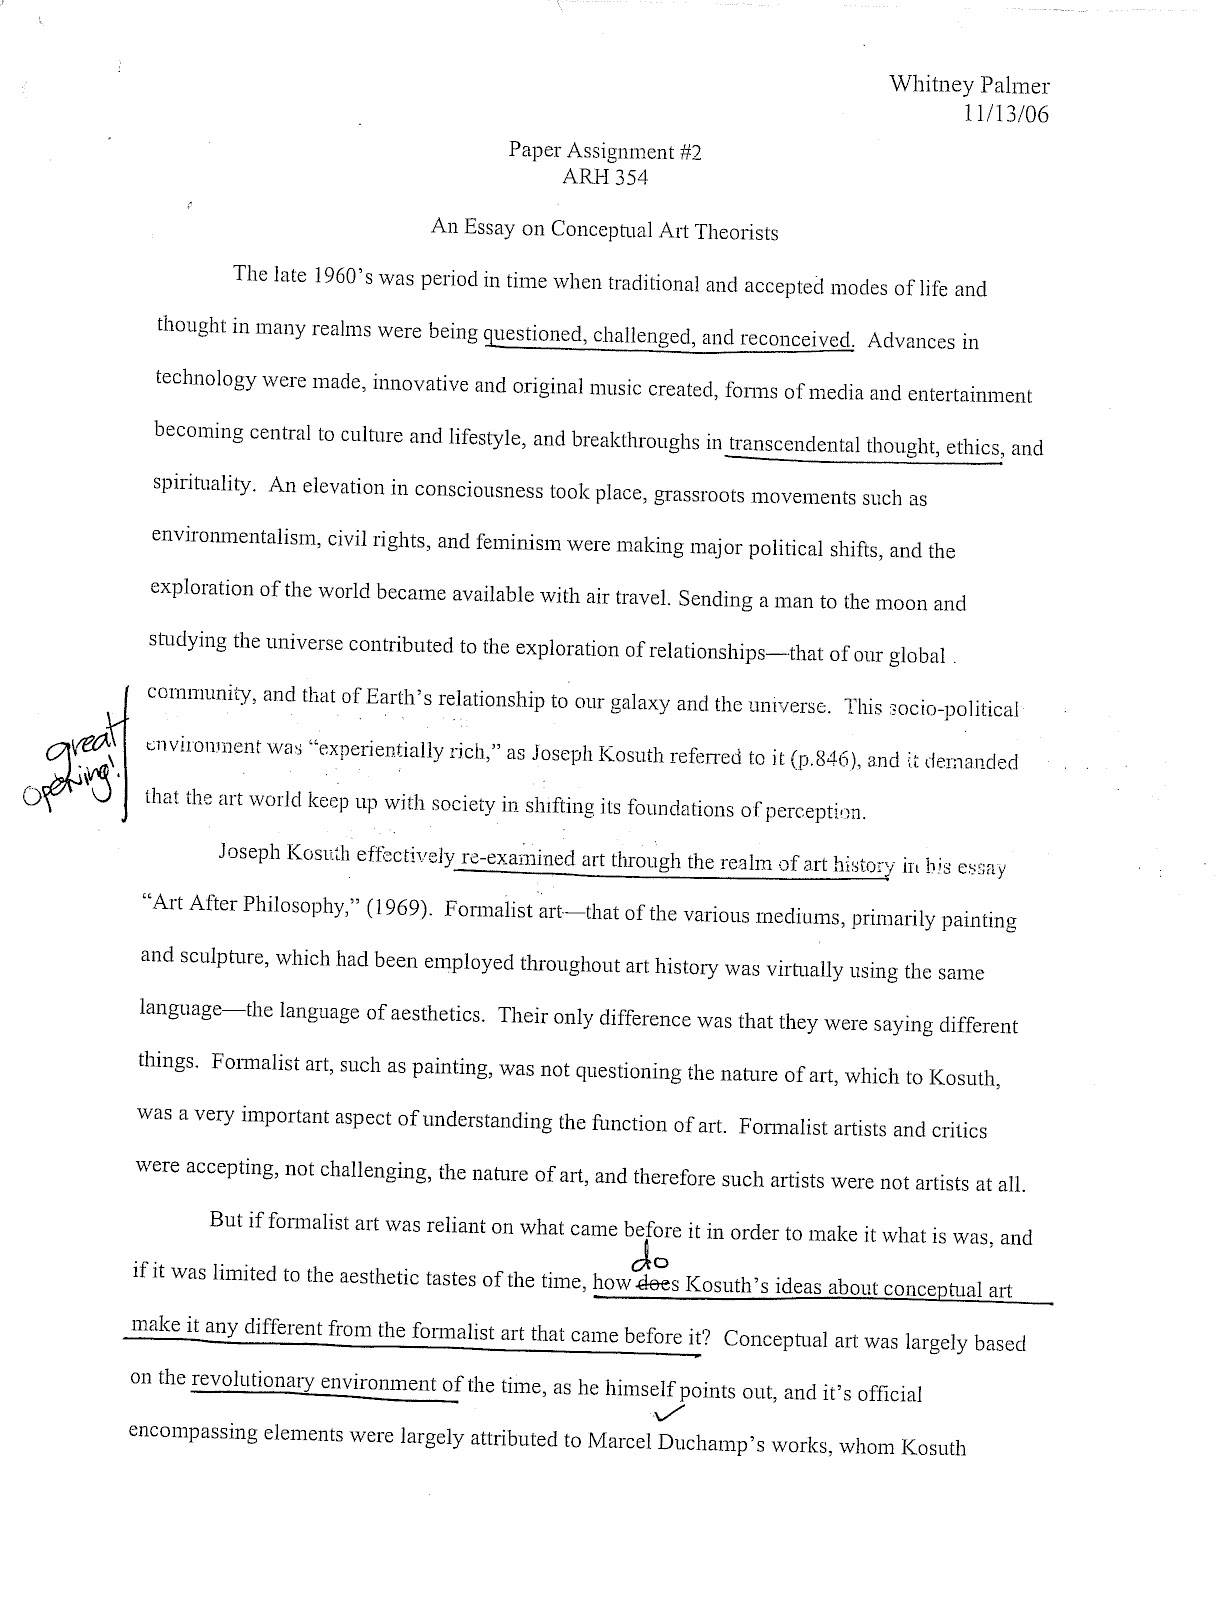 ww essay art history essays art history essays compucenter the  art history essays art history essays compucenter the aim of this essay from art history fall